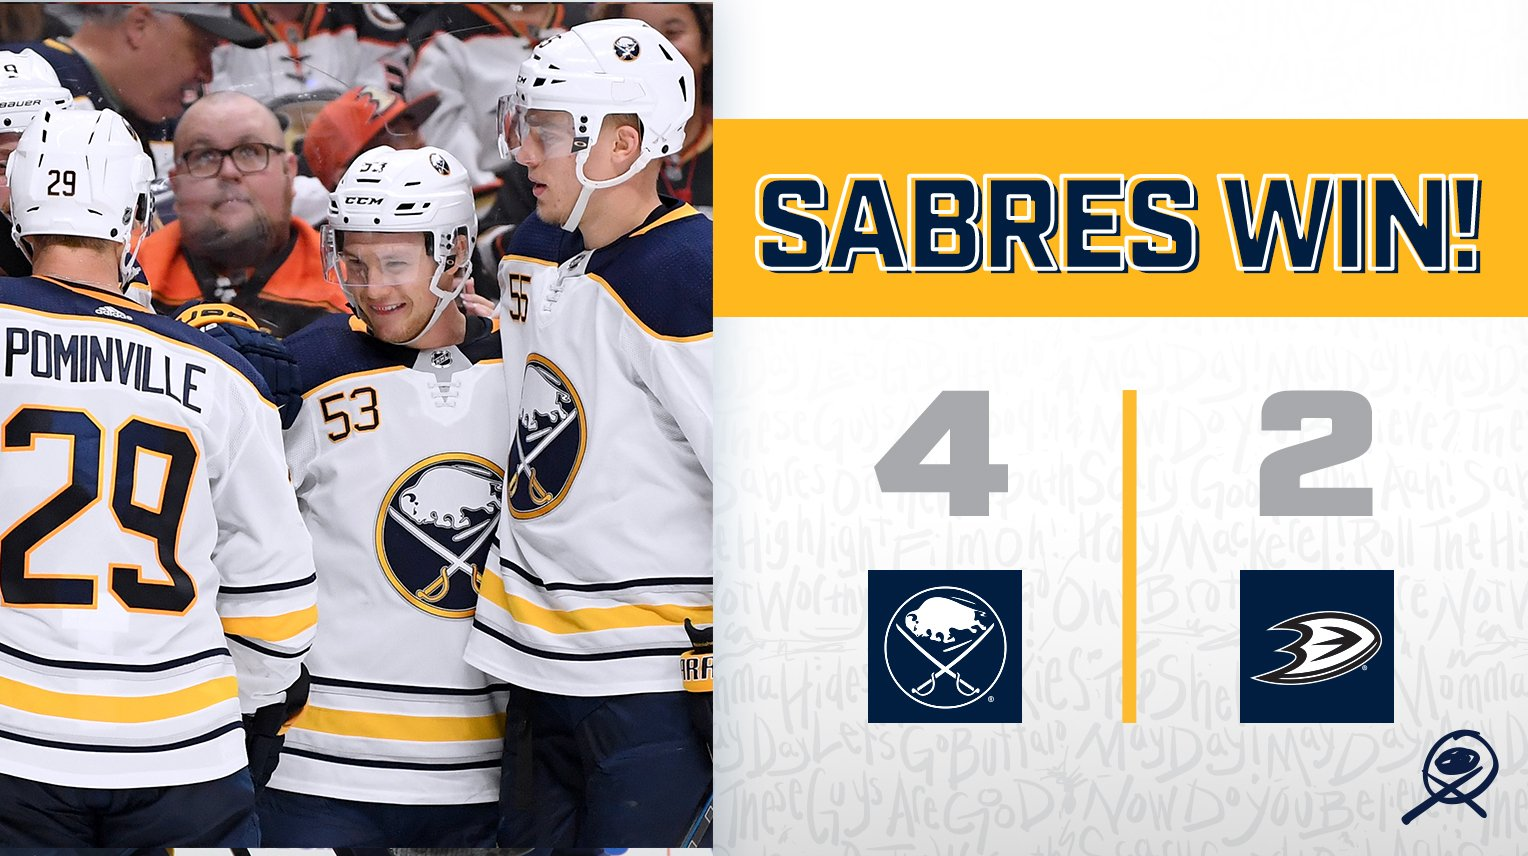 Took down one of the best in the west - and that's back-to-back wins!  #LetsGoBuffalo #Sabres https://t.co/iVQK6Y0Gq1